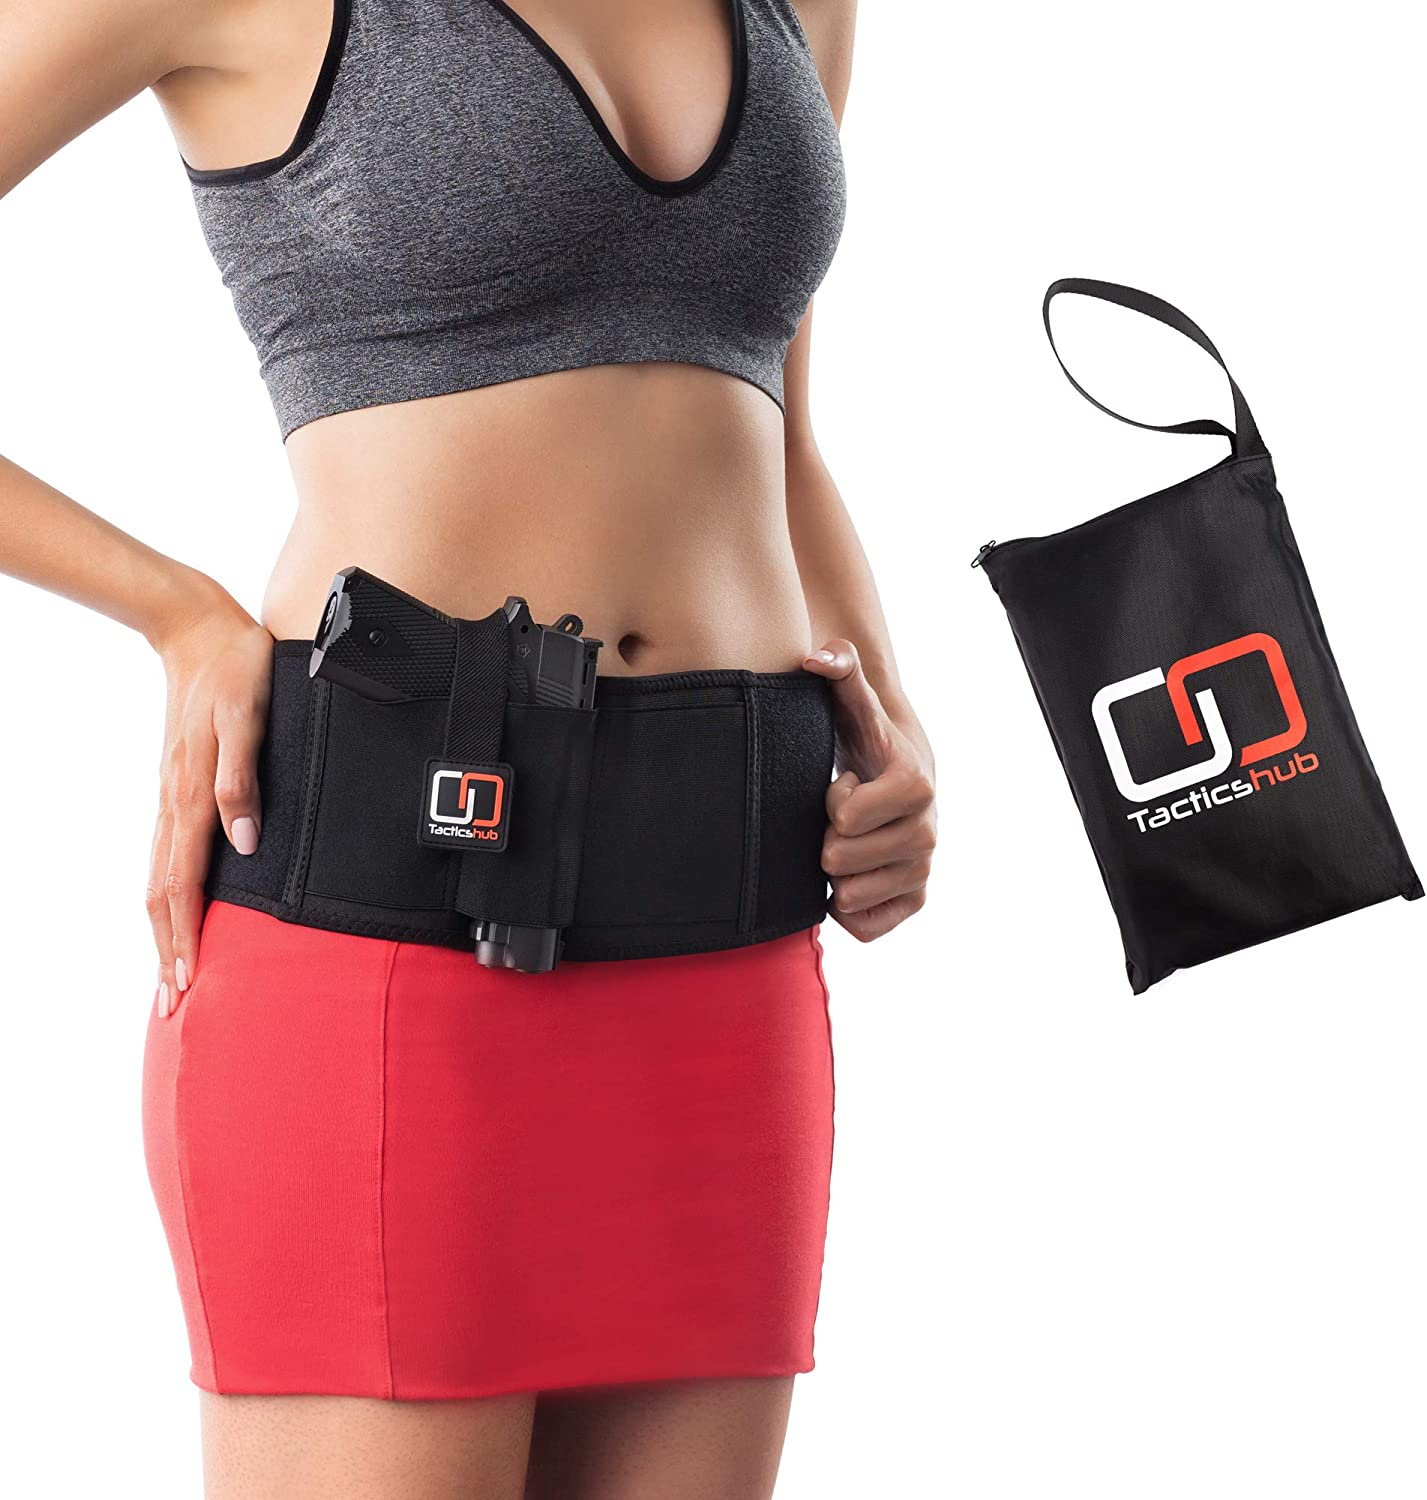 Tactics hub Belly Band Holster for Concealed Carry